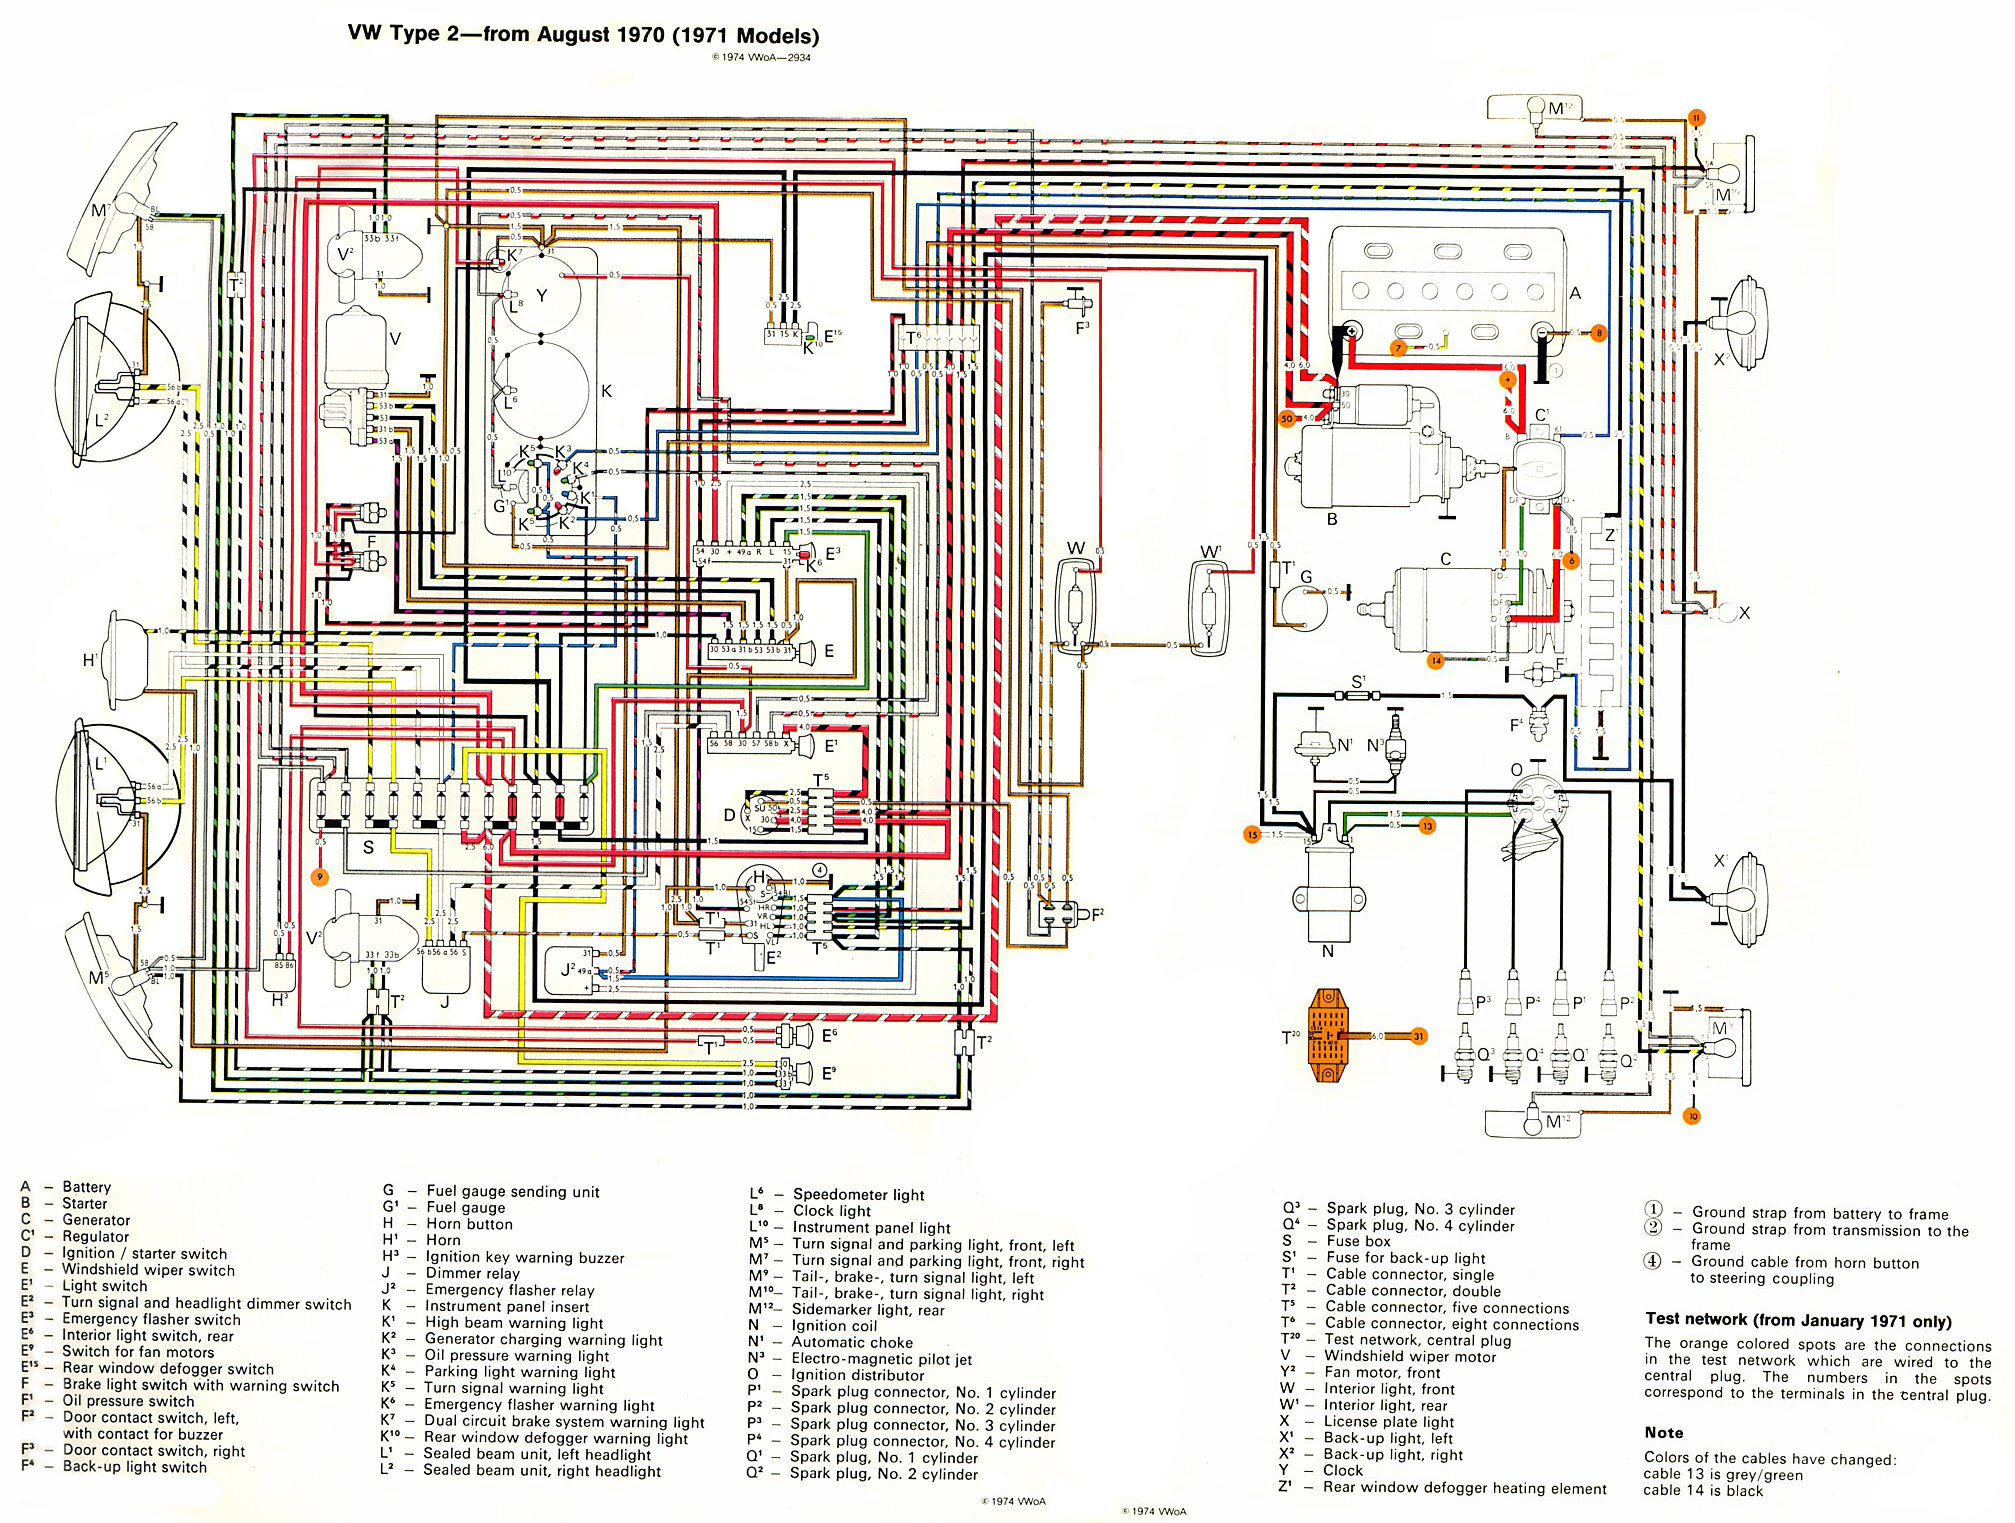 baybus_71_fixed thesamba com type 2 wiring diagrams vw transporter fuse box layout 2014 at crackthecode.co